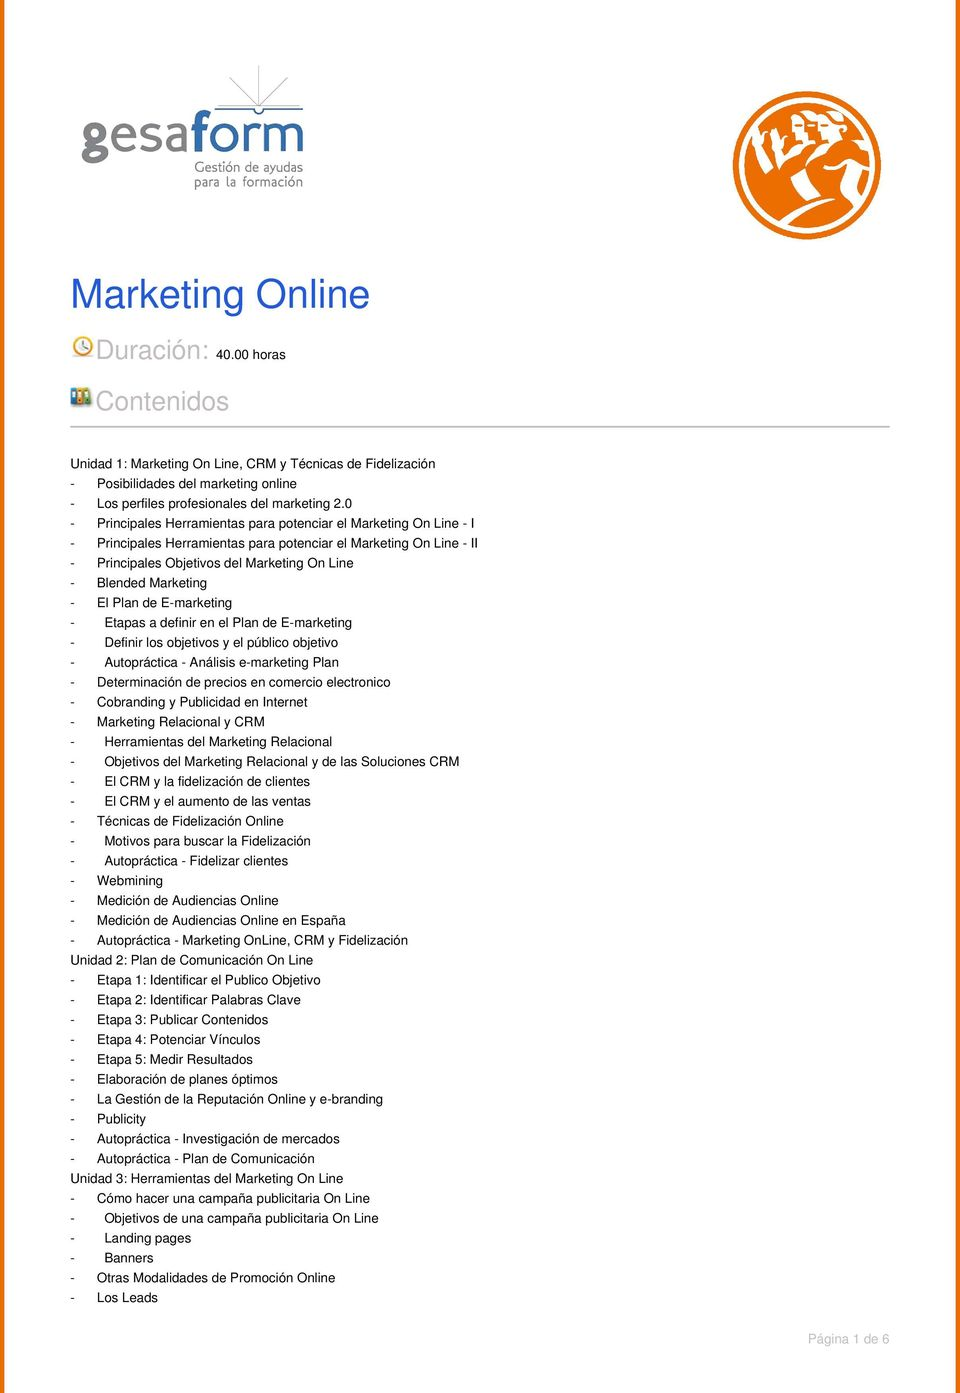 Marketing - El Plan de E-marketing - Etapas a definir en el Plan de E-marketing - Definir los objetivos y el público objetivo - Autopráctica - Análisis e-marketing Plan - Determinación de precios en